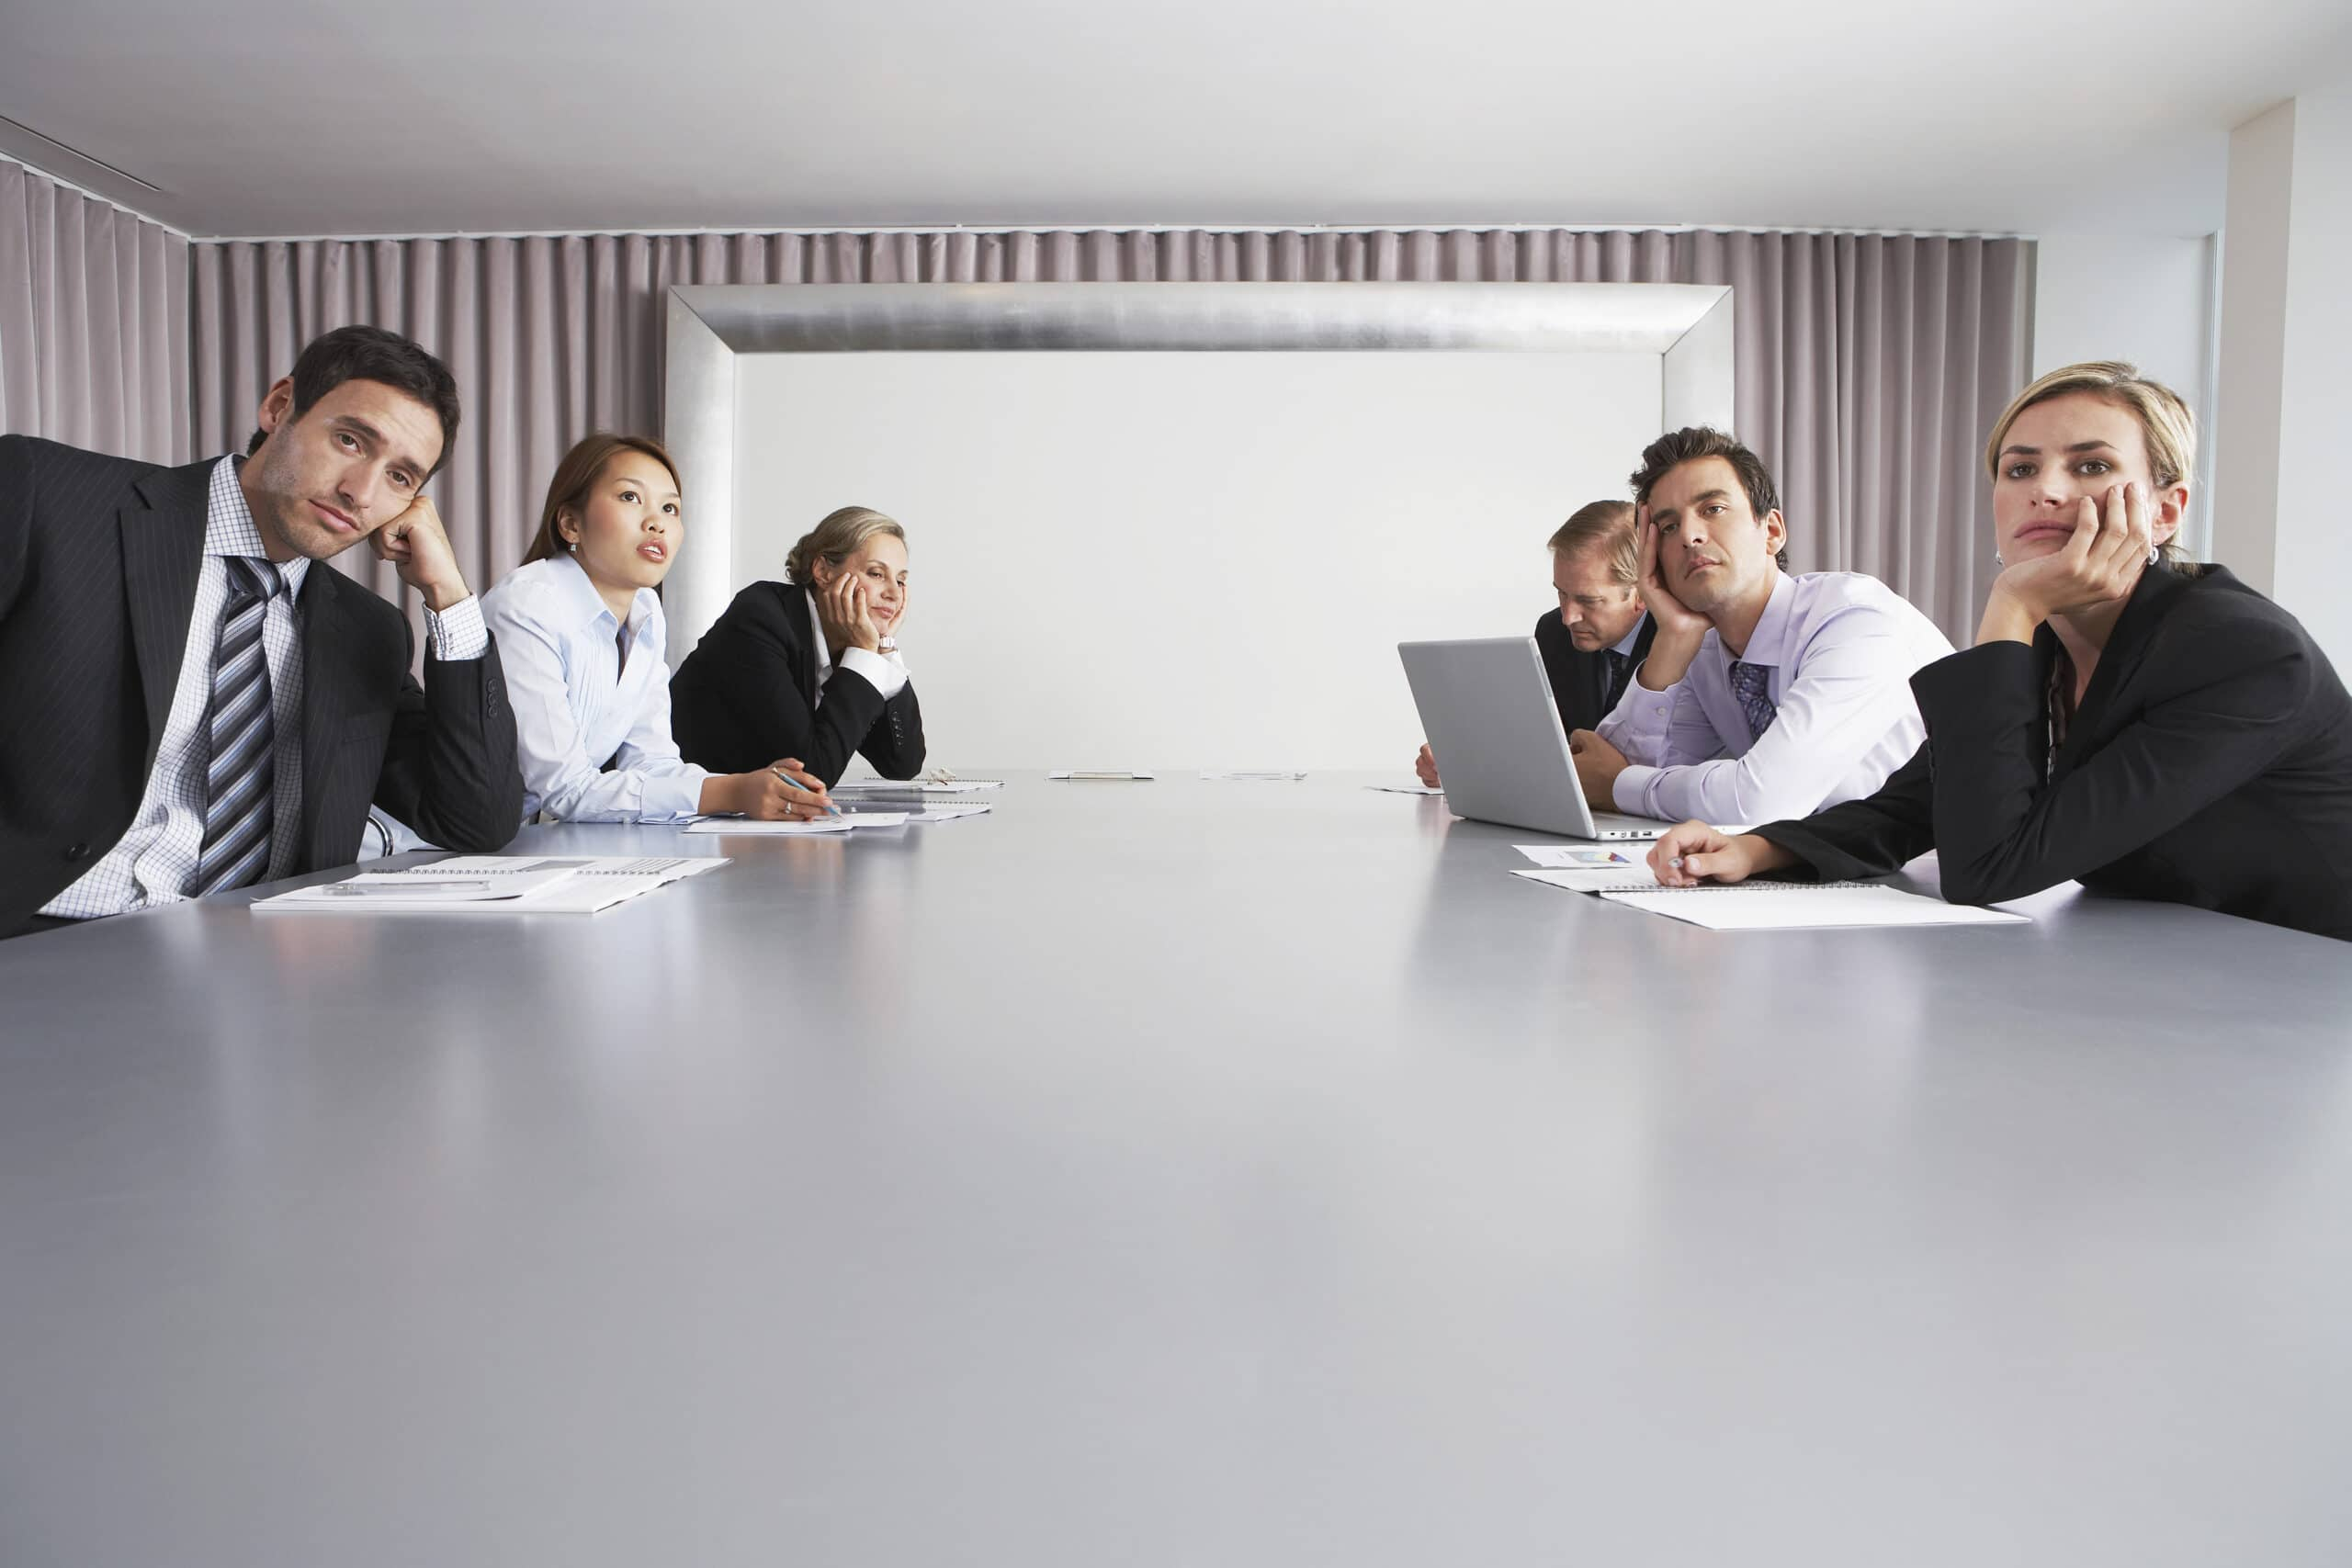 Bored multiethnic business people sitting in conference room